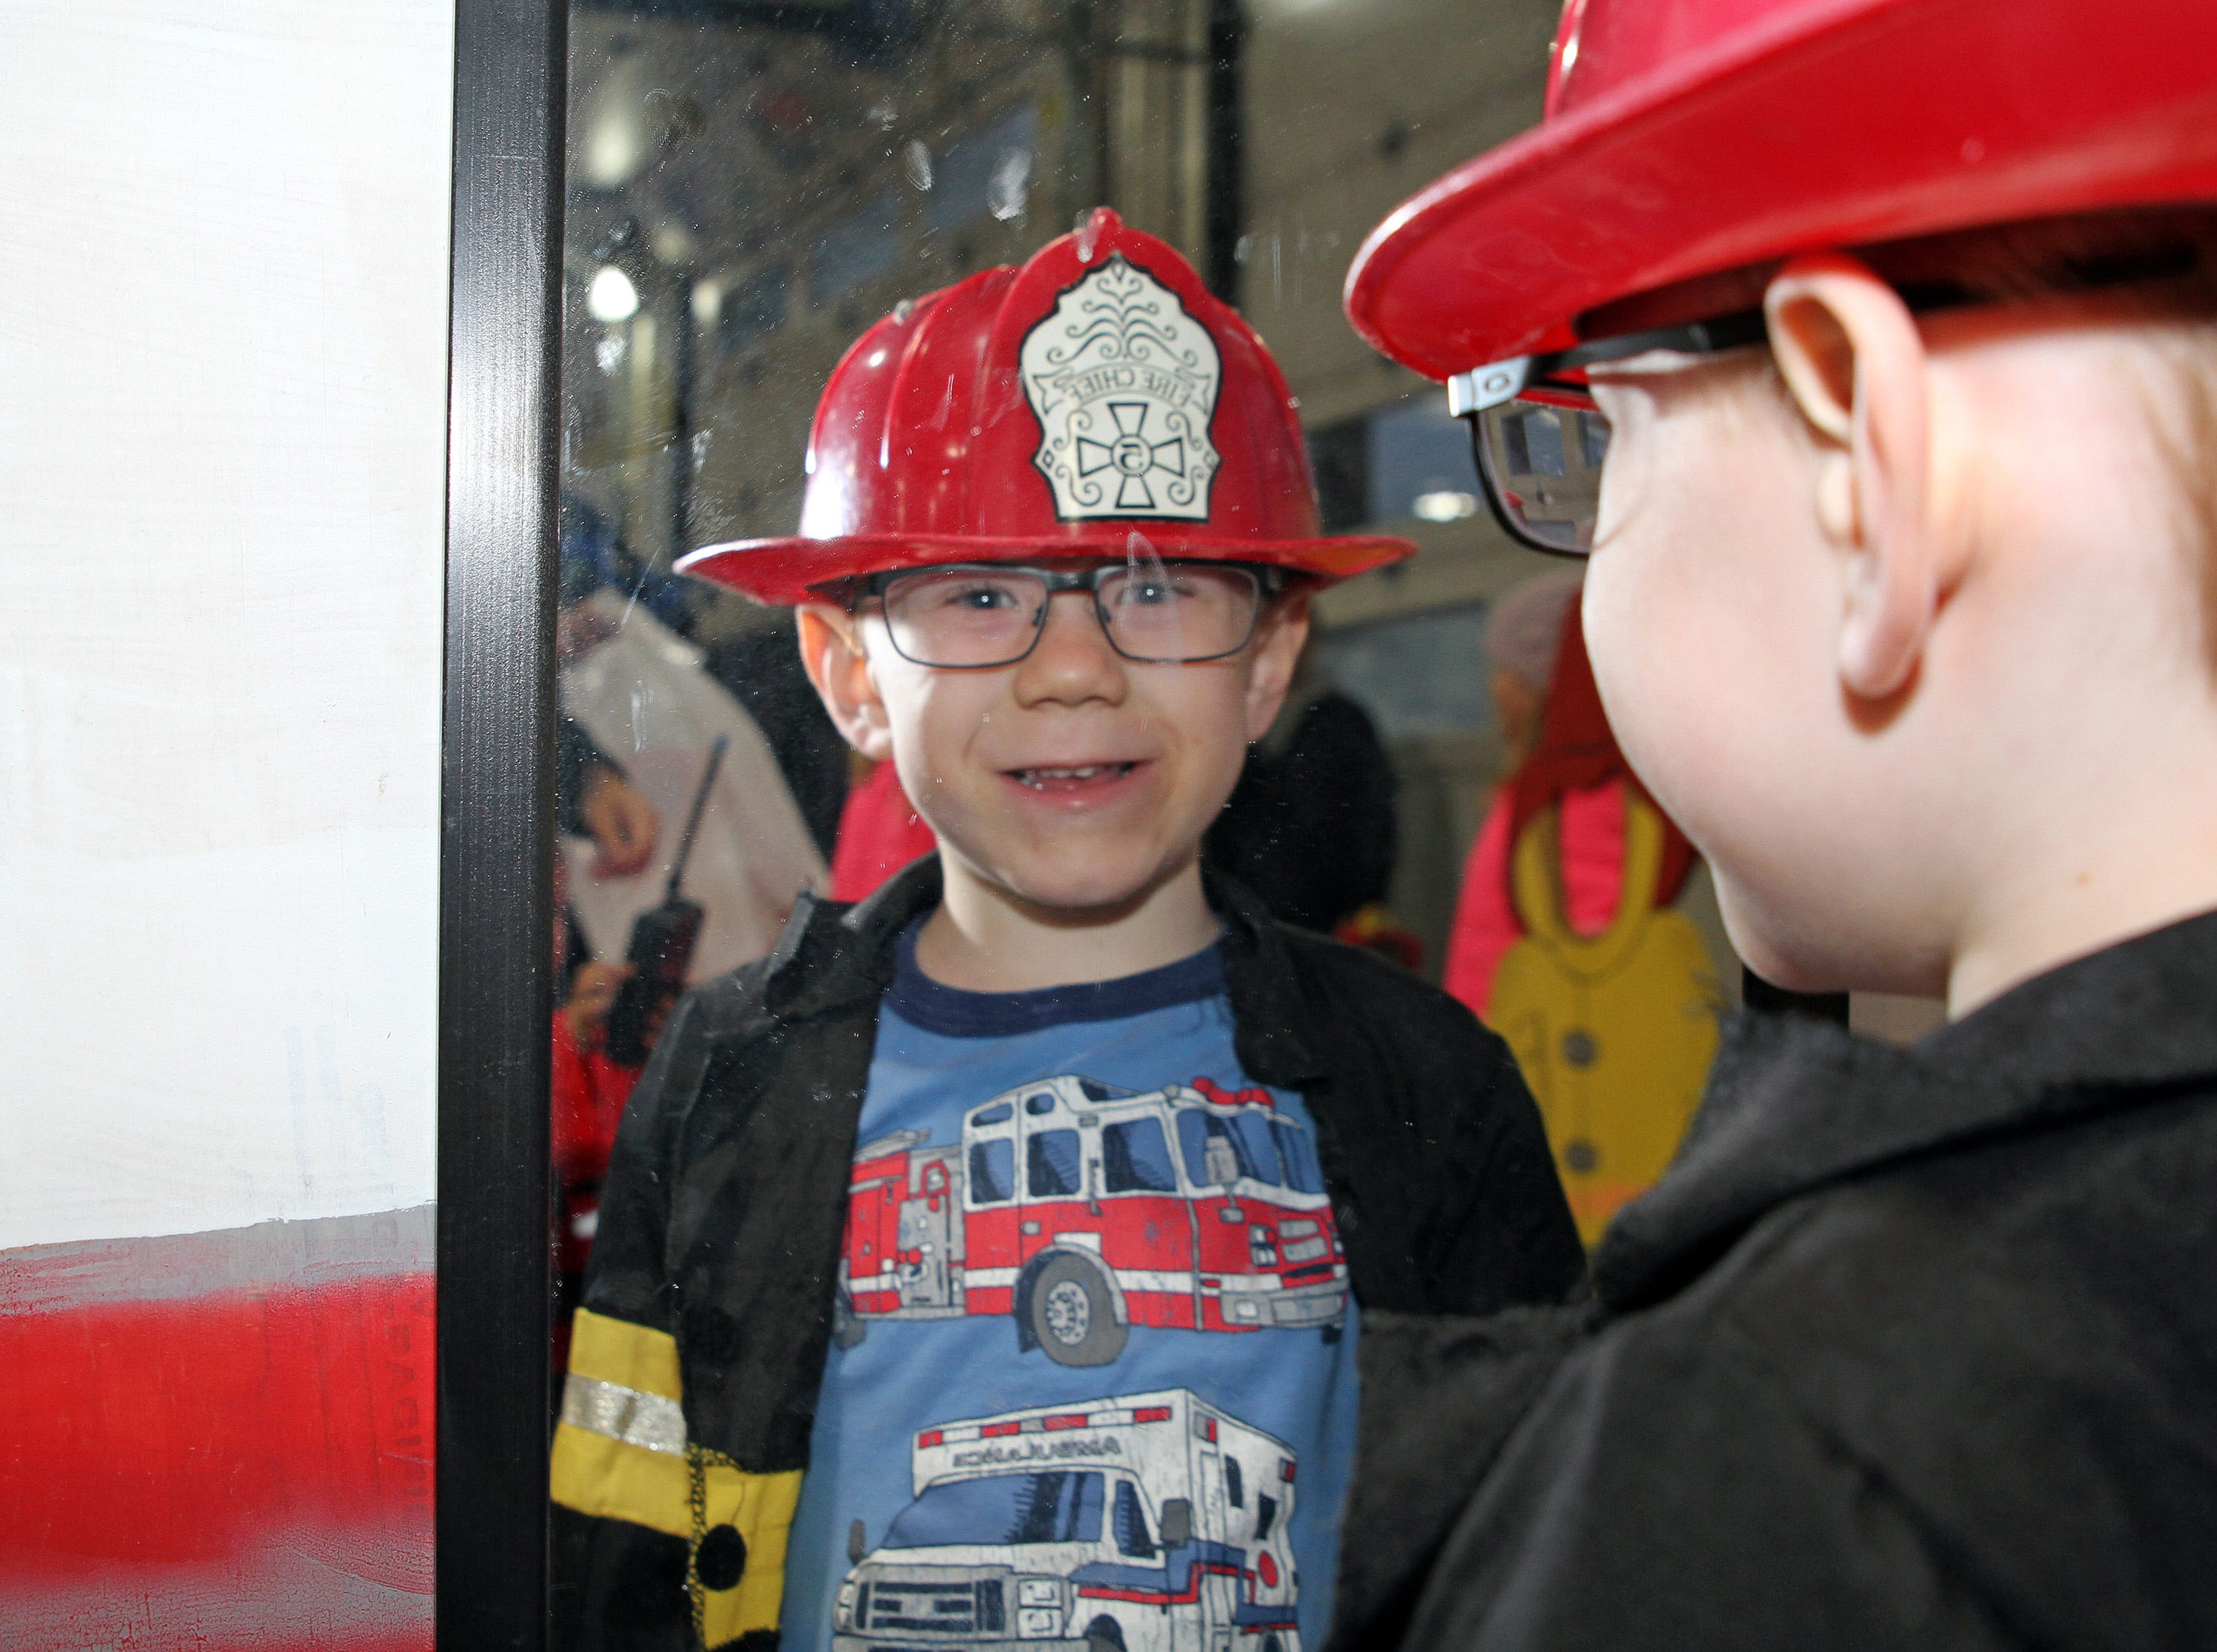 Hunter Radtke, 4, of Ankeny checks out his new outfit in the mirror during the Ankeny Fire Department's Fire Prevention Week Open House on Wednesday, Oct. 10, 2018 at Fire Station #1, 120 N.W. Ash Dr in Ankeny.